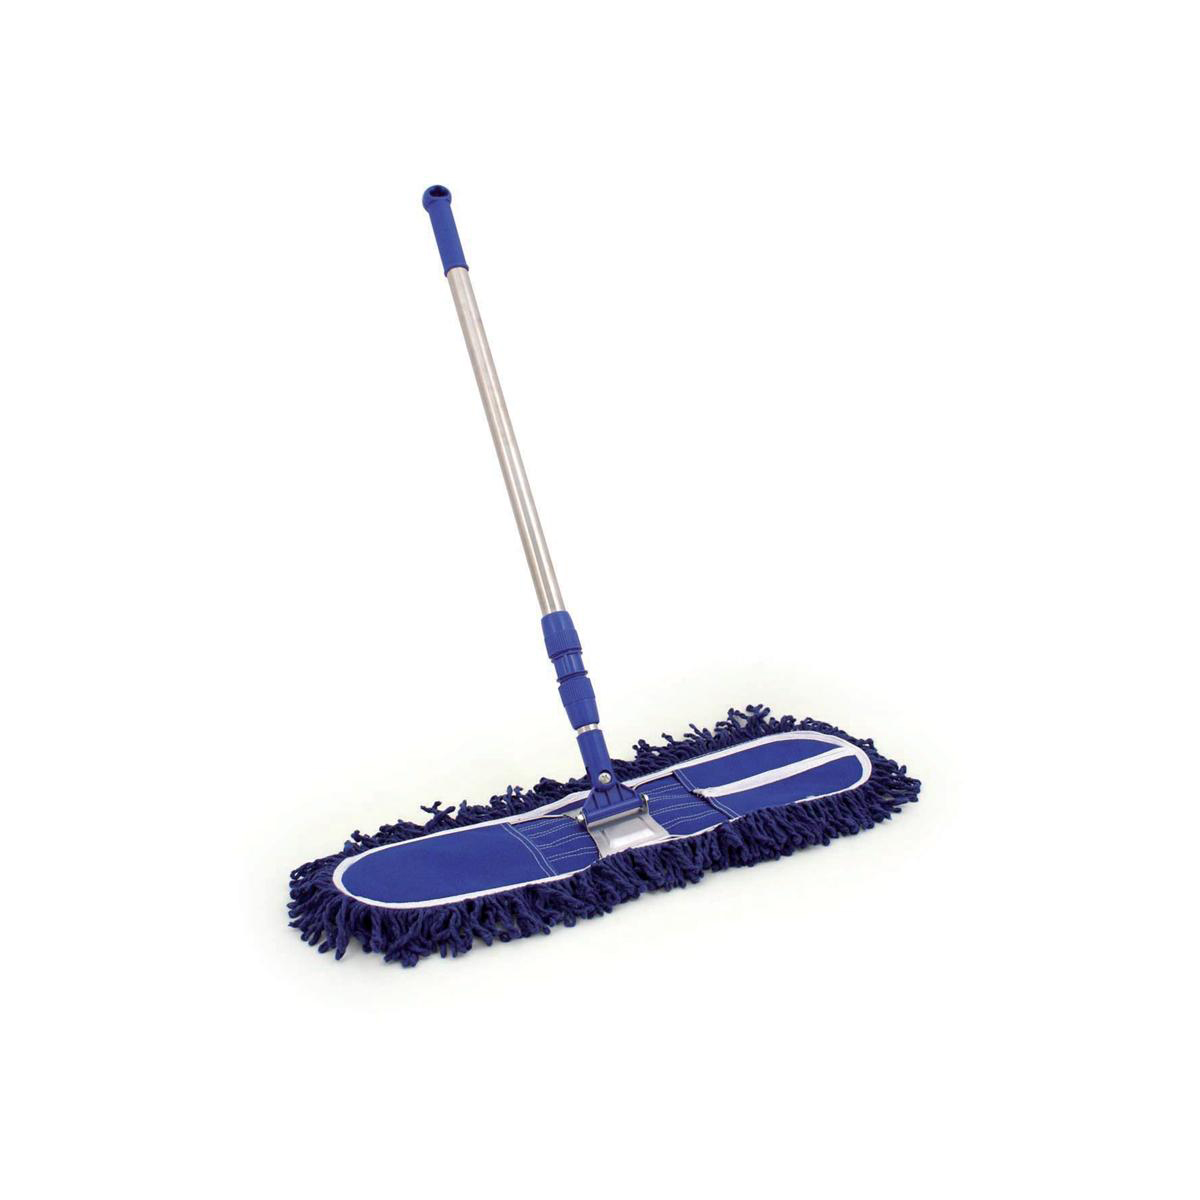 Mops & Buckets Bentley Dustbeater Sweeper with Telescopic Handle (60cm Blue head) Ref SPC/DB60